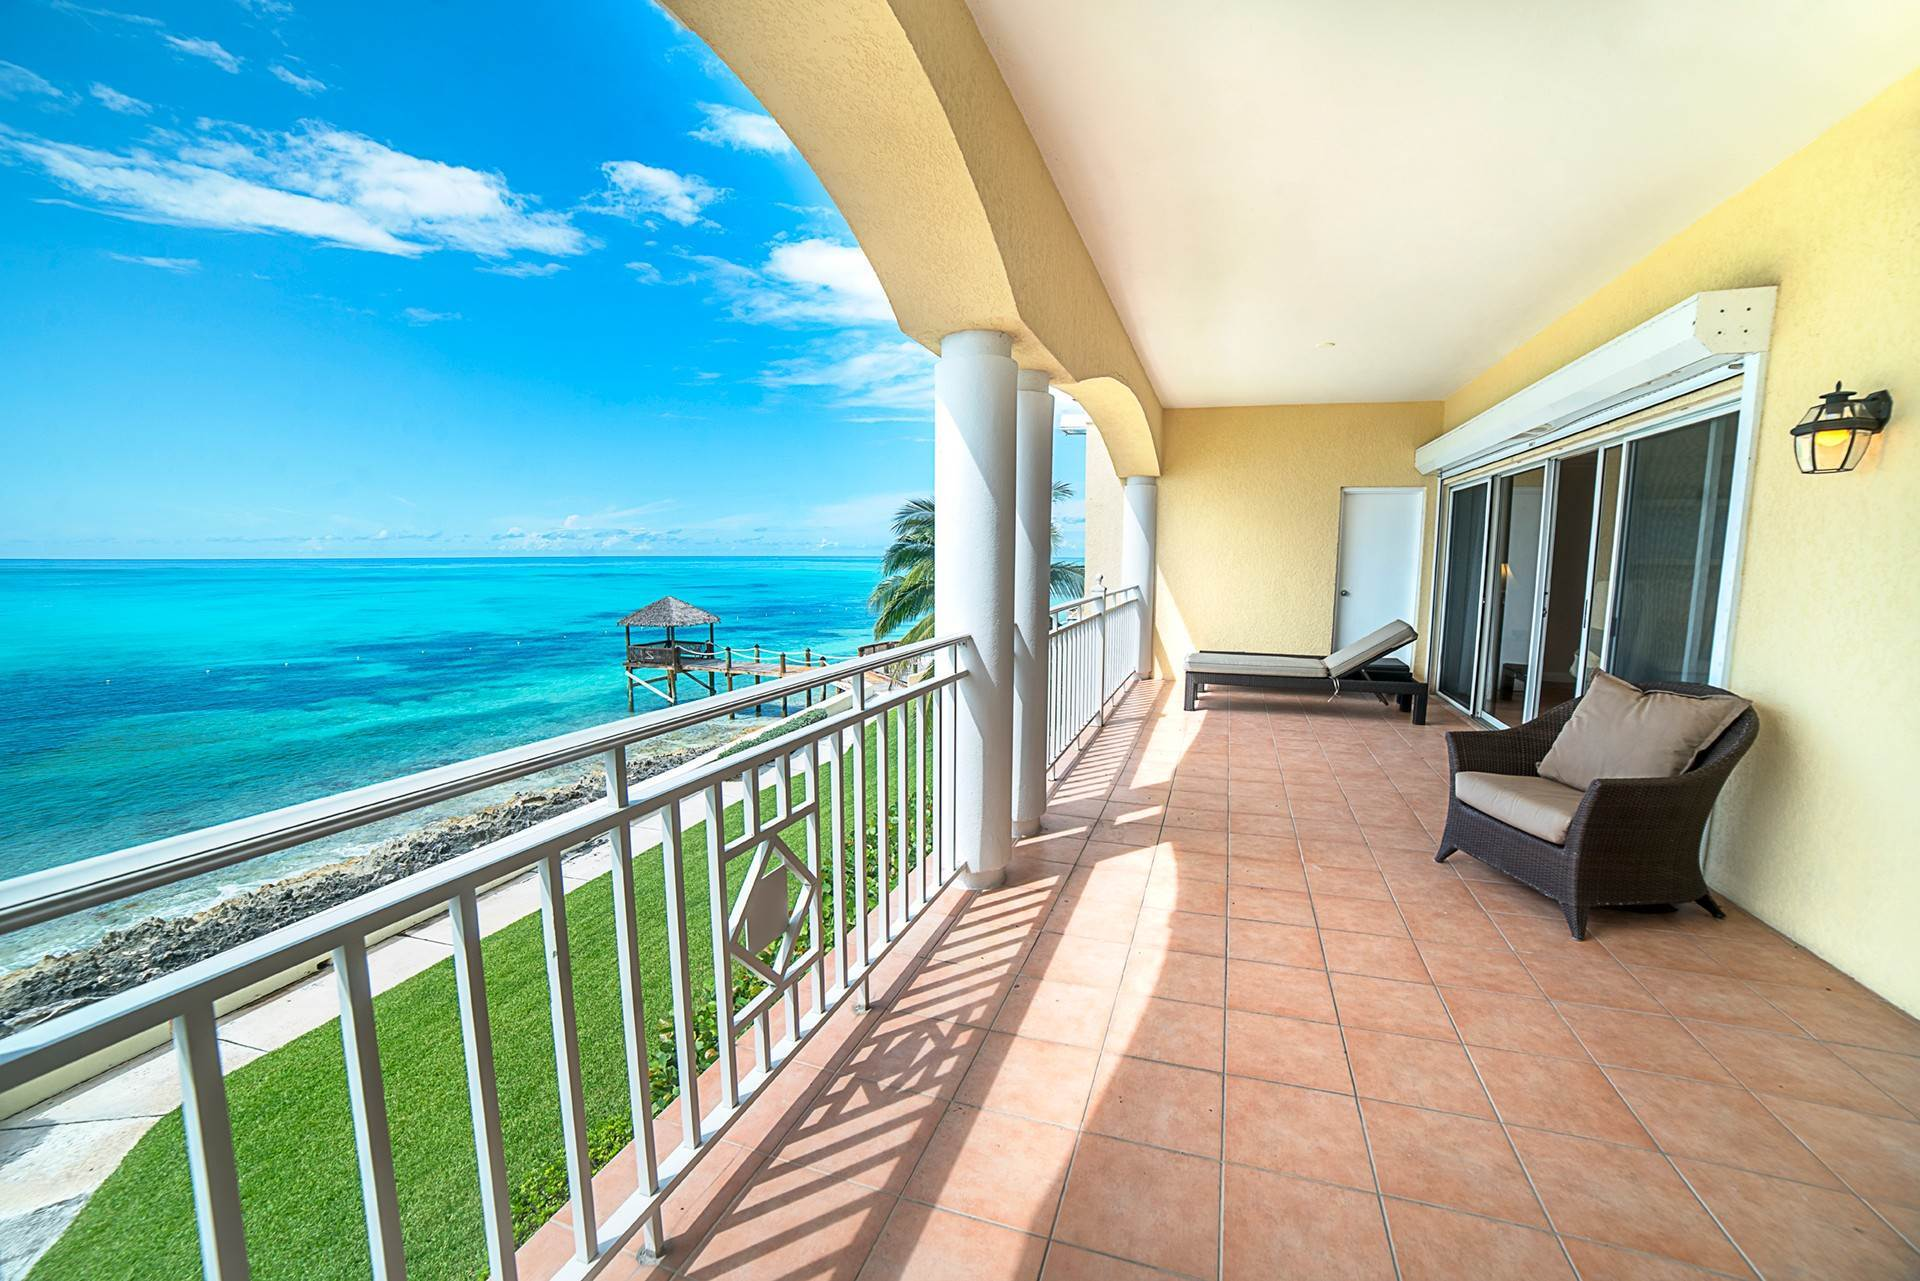 Co-op / Condo for Sale at Luxury Waterfront Condo Caves Point, Nassau And Paradise Island, Bahamas